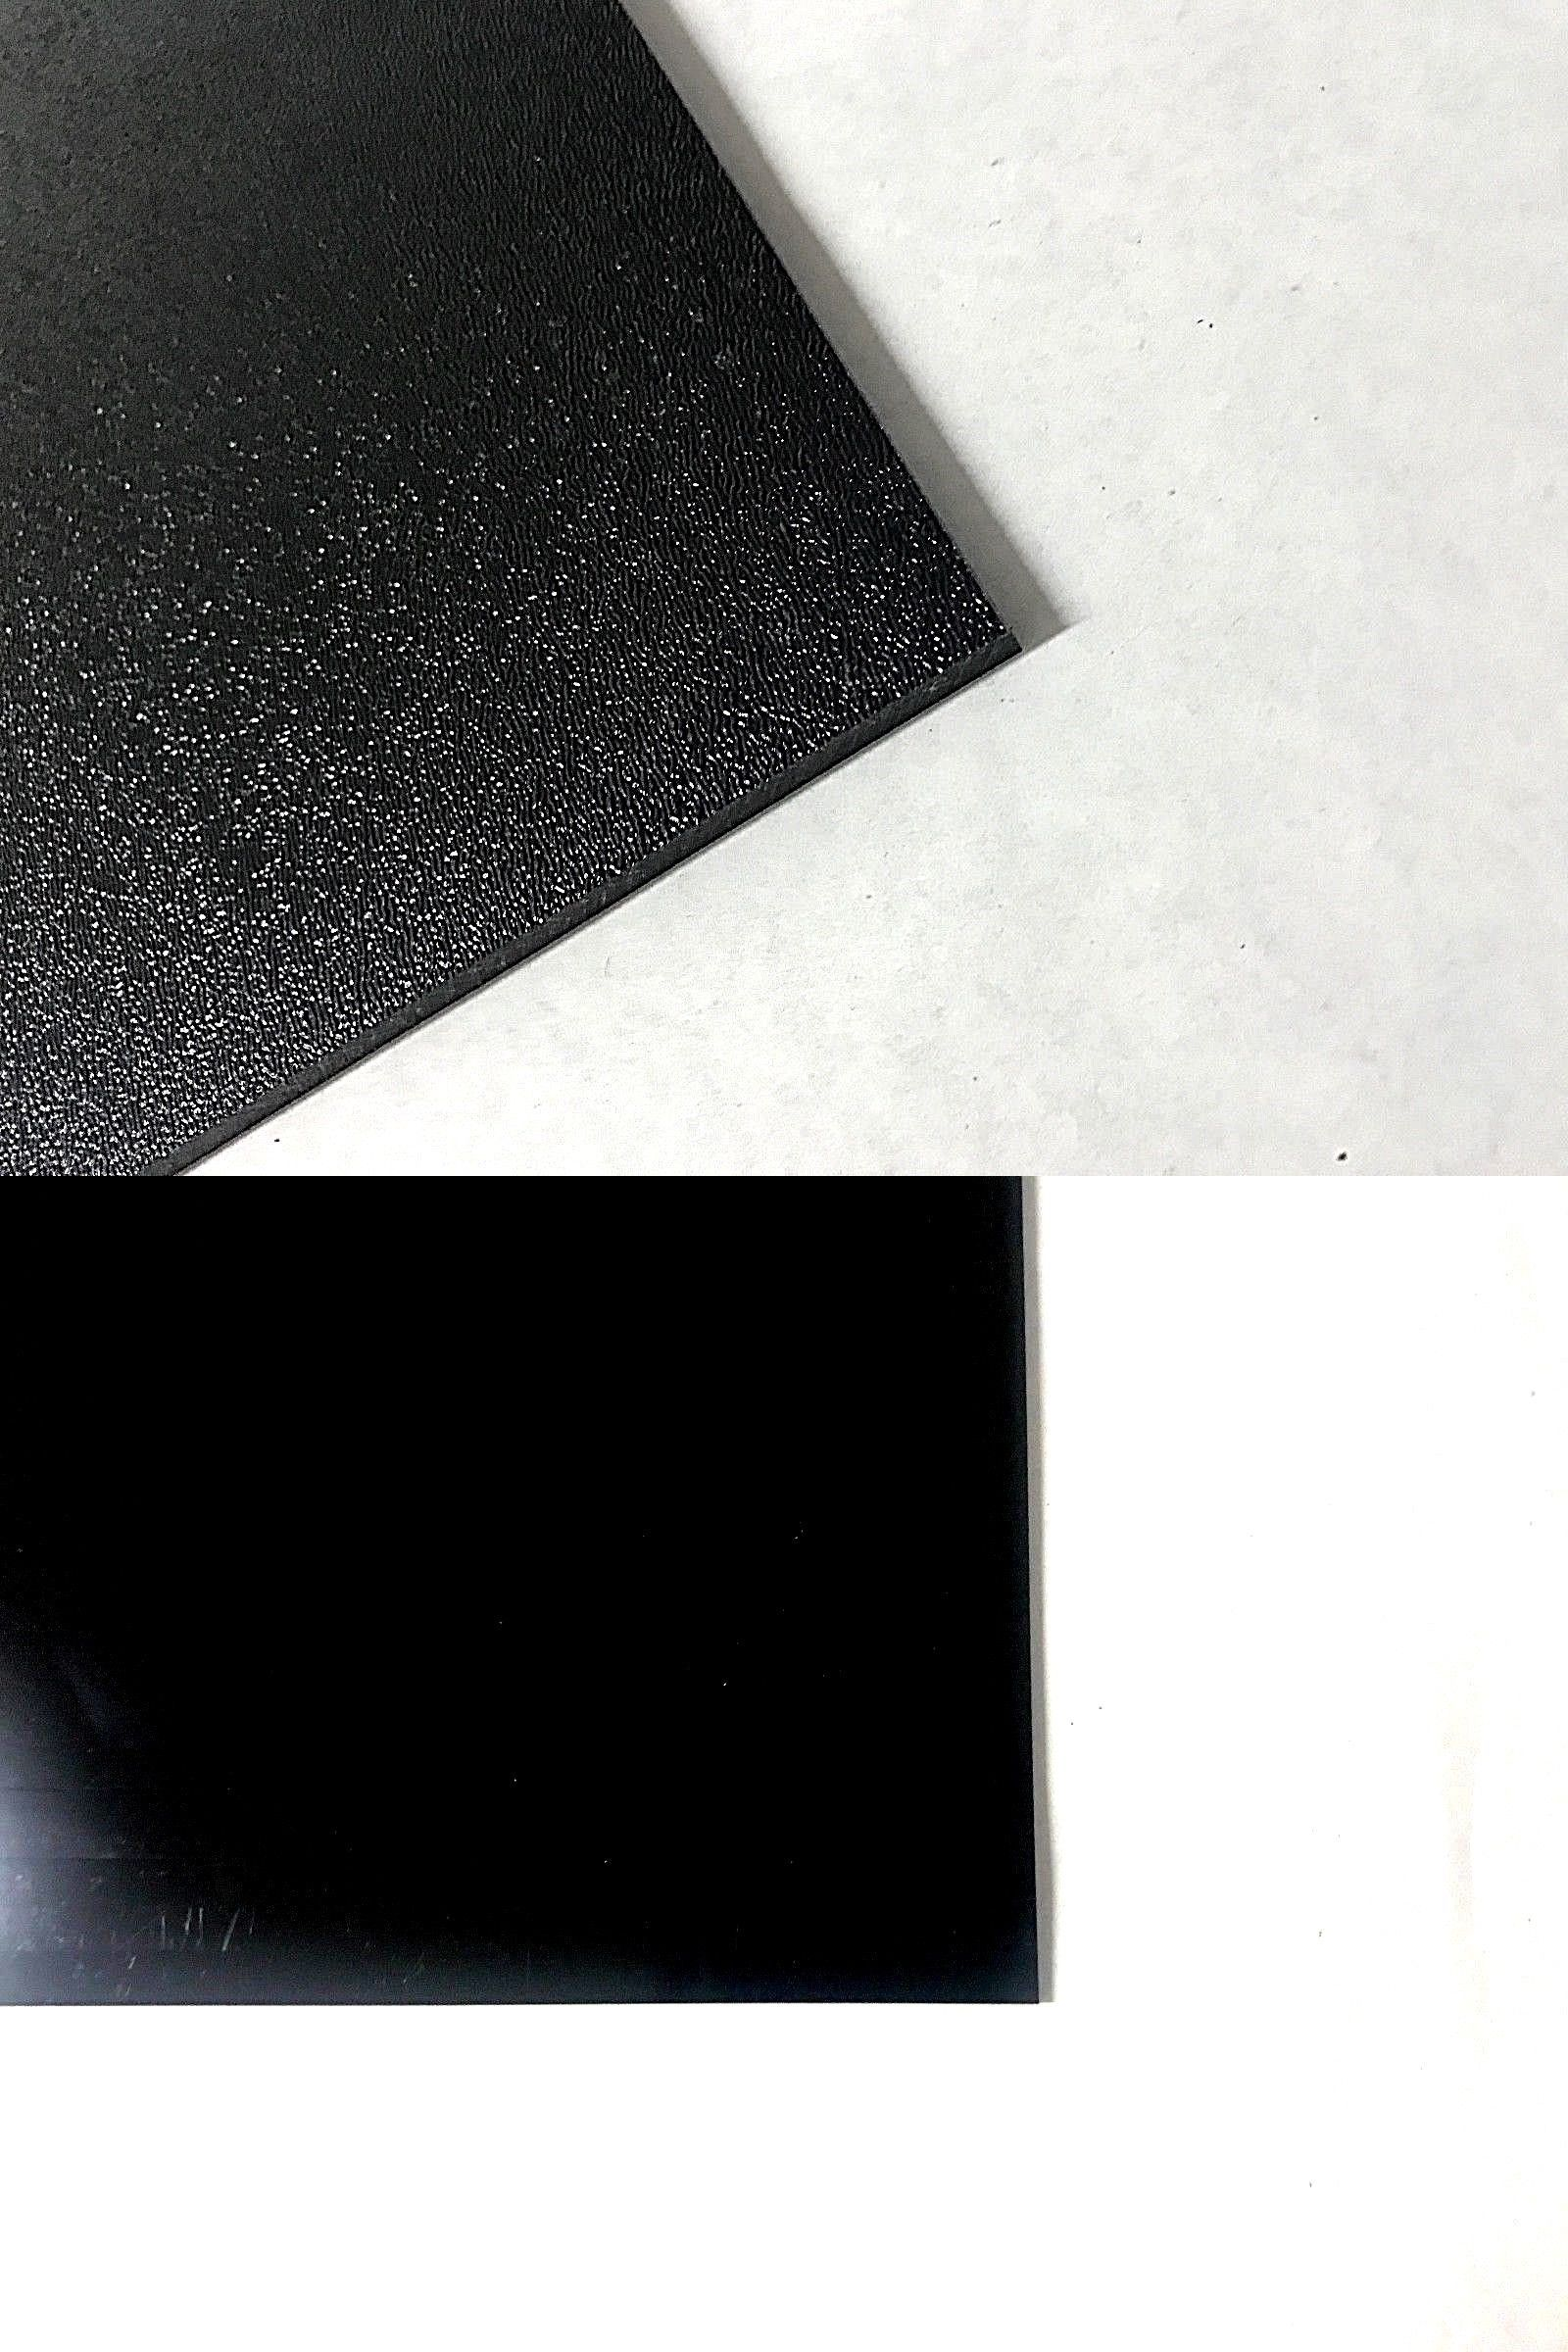 Other Crafts 75576 Abs Black Plastic Sheets You Pick The Size 1 2 4 8 Pack Options 1 Side Textured Buy It Now Only 11 4 On Plastic Sheets Texture Sheets